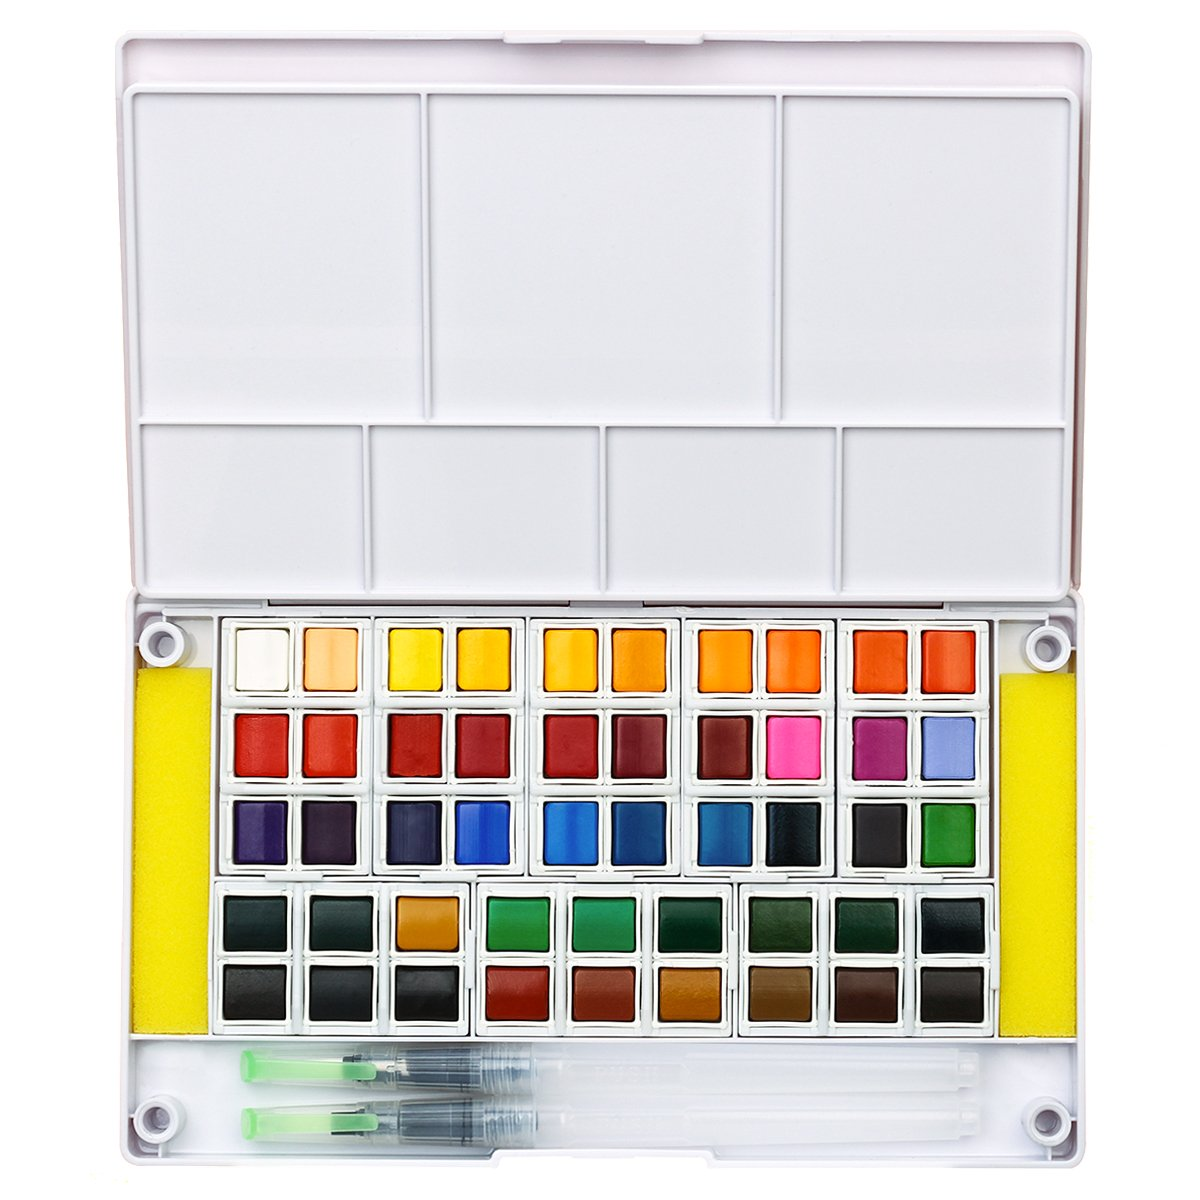 MISULOVE Watercolor Paint Set - 48 Assorted Vibrant Colors with Brushes Pen, Mixing Palette, Professional Travel Watercolor Kit, for Artists, Art Painting, Watercolor Techniques and More